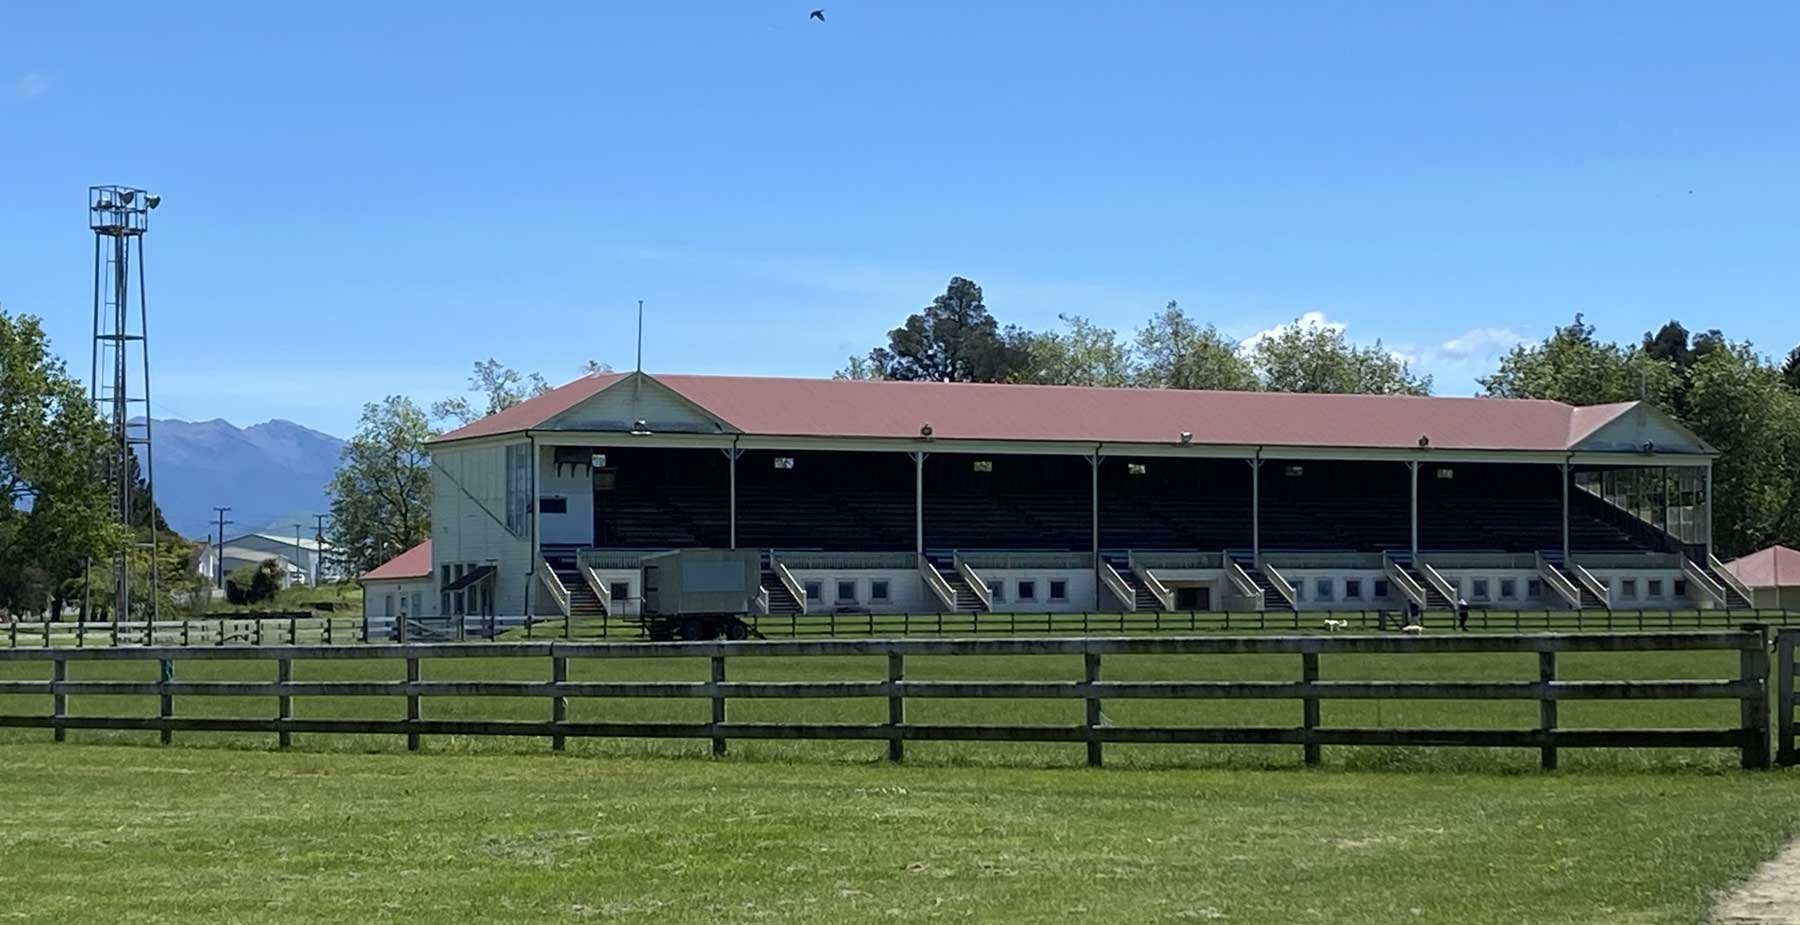 An image of the grandstand at solway showgrounds